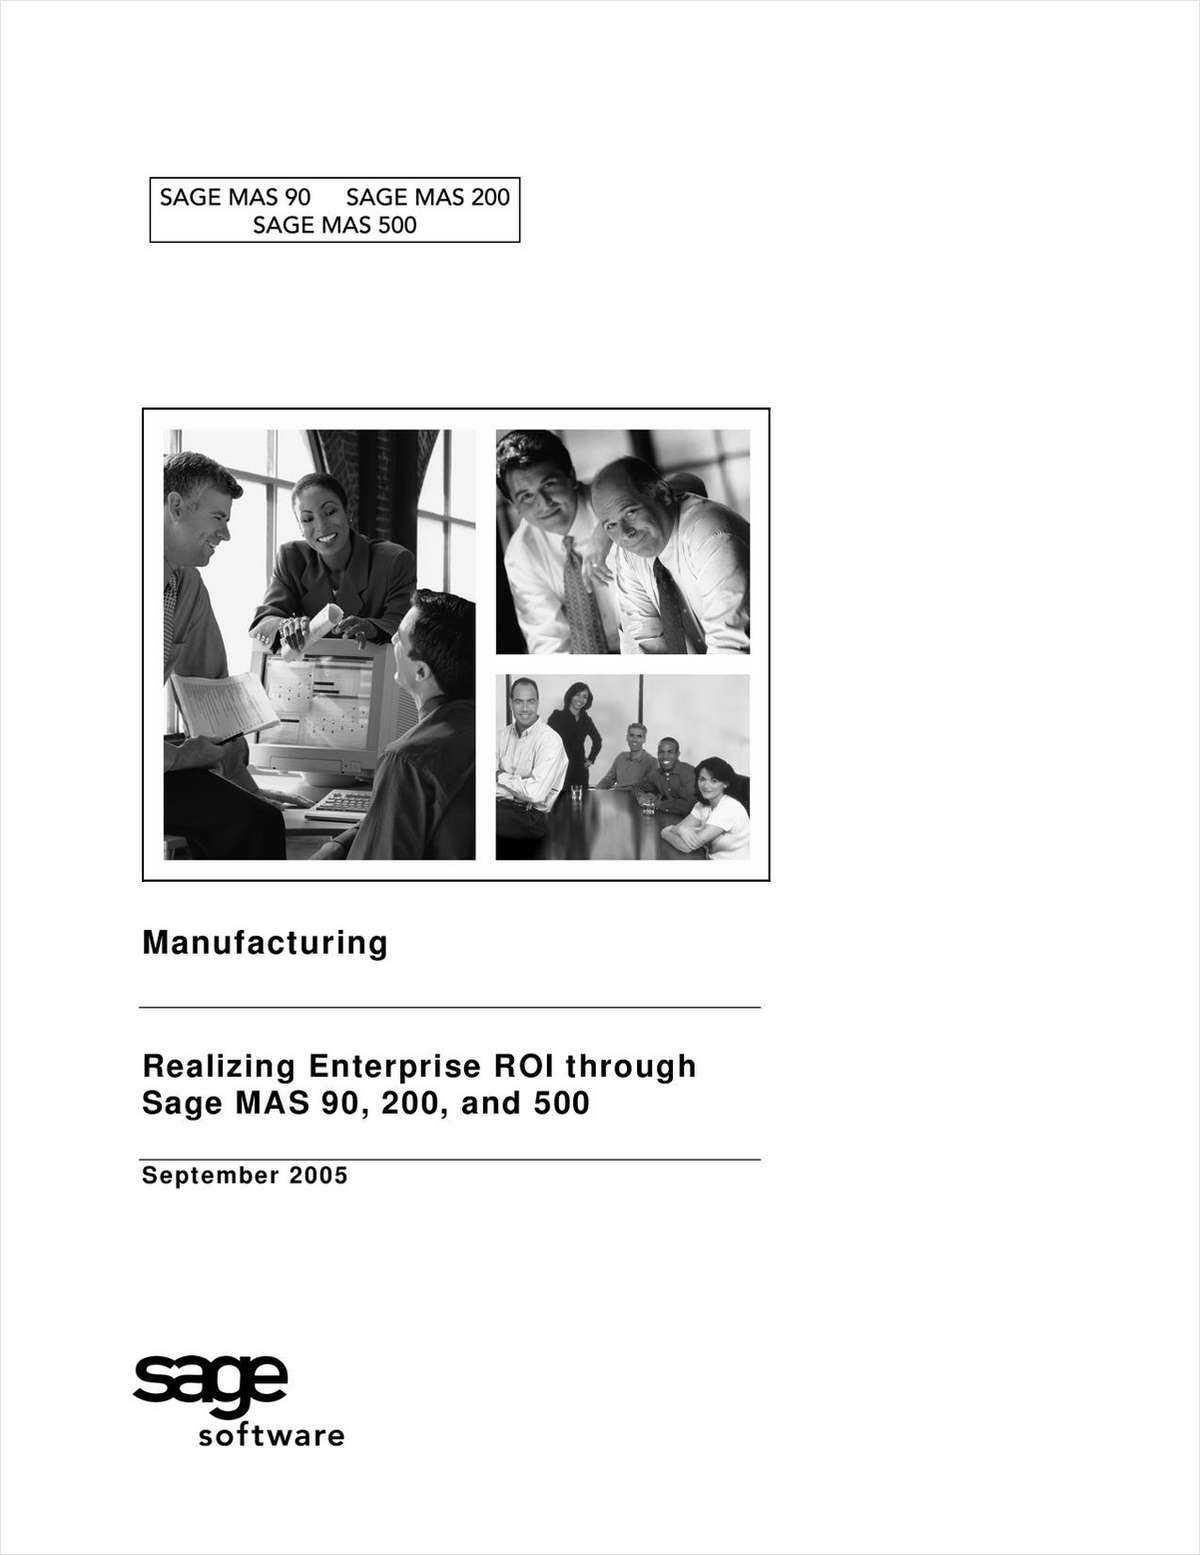 Manufacturing - Realizing Enterprise ROI through Sage MAS 90, 200 and 500